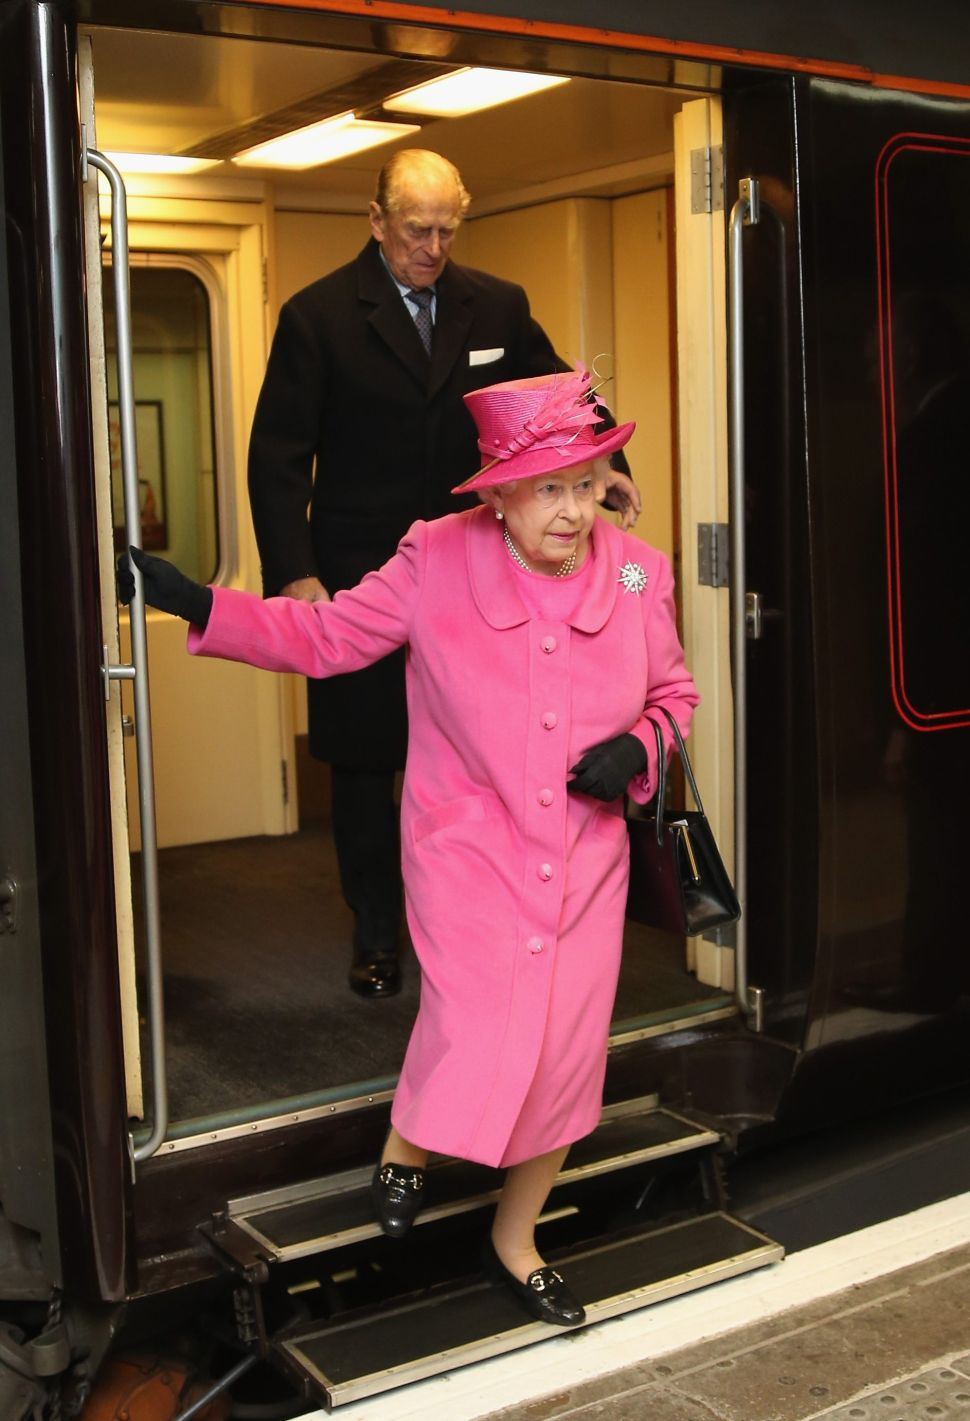 Queen Elizabeth and Meghan Markle Will Have Slumber Party On the Royal Train